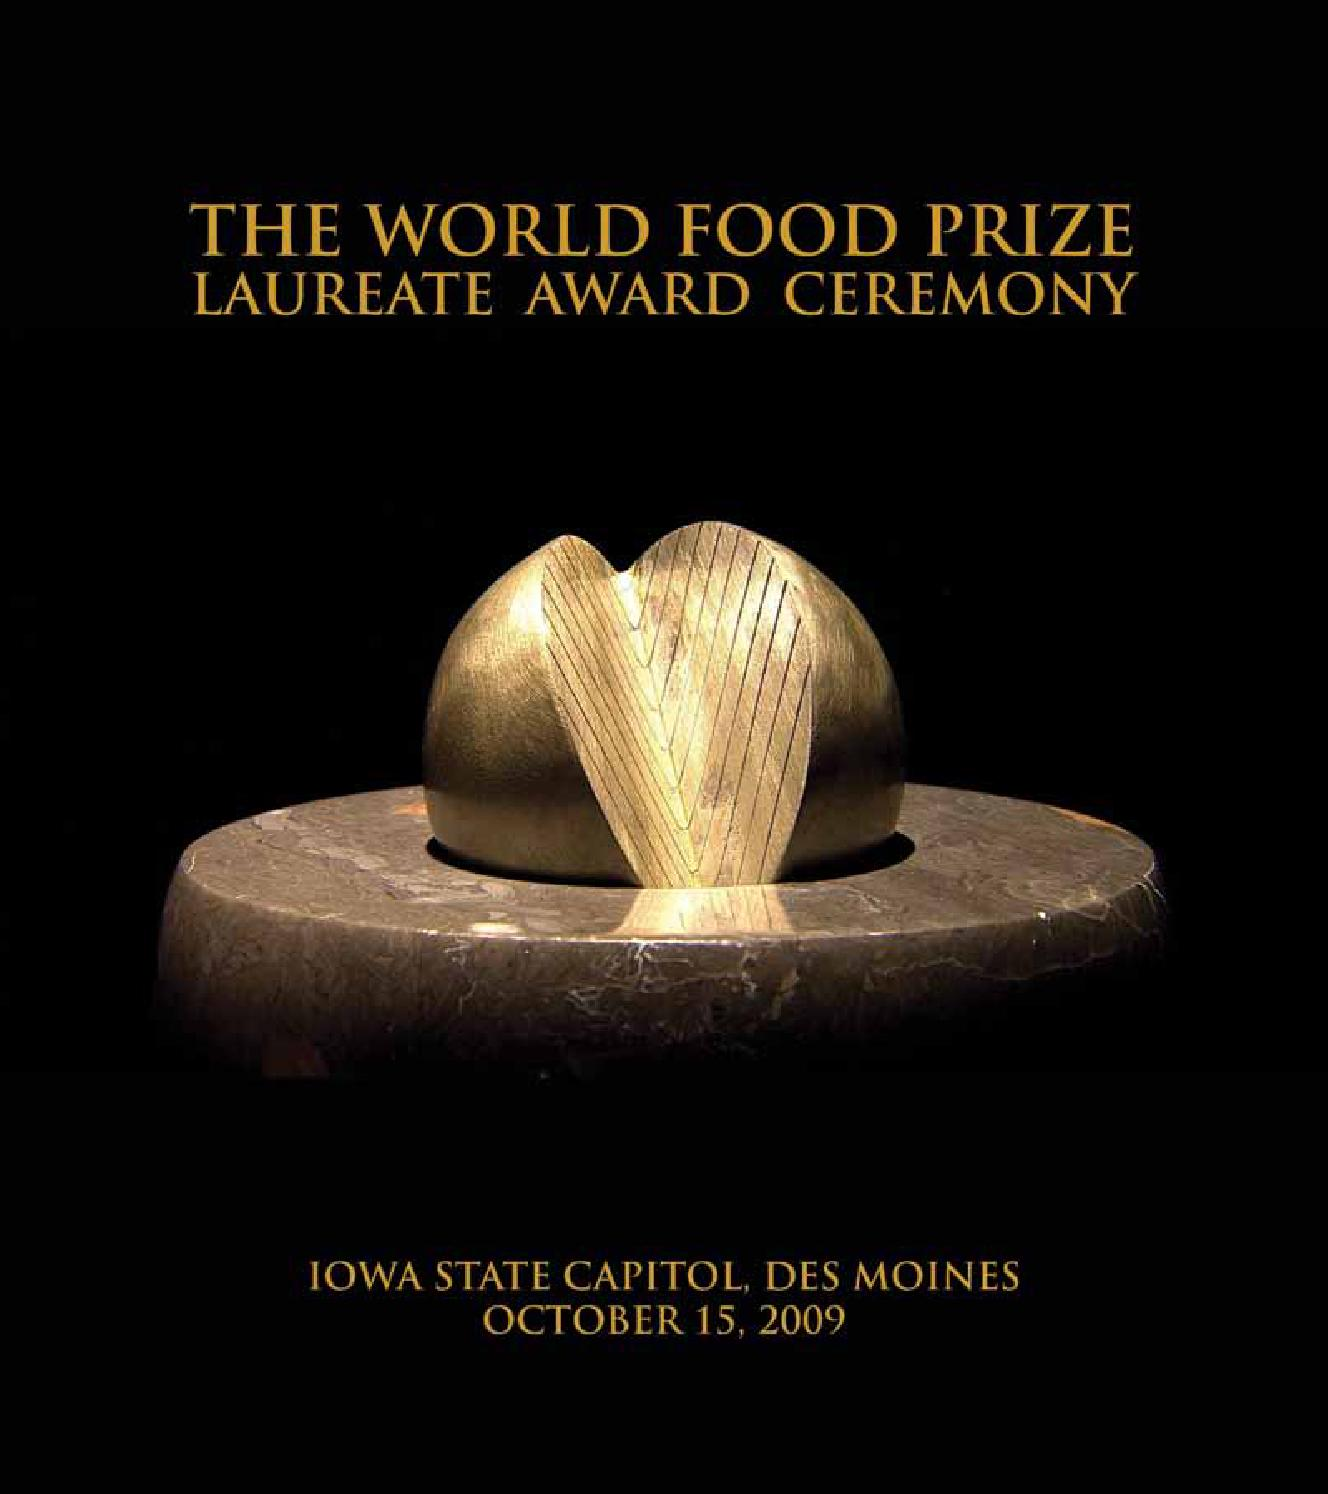 The World Food Prize 2009 Award Ceremony by Justin Cremer